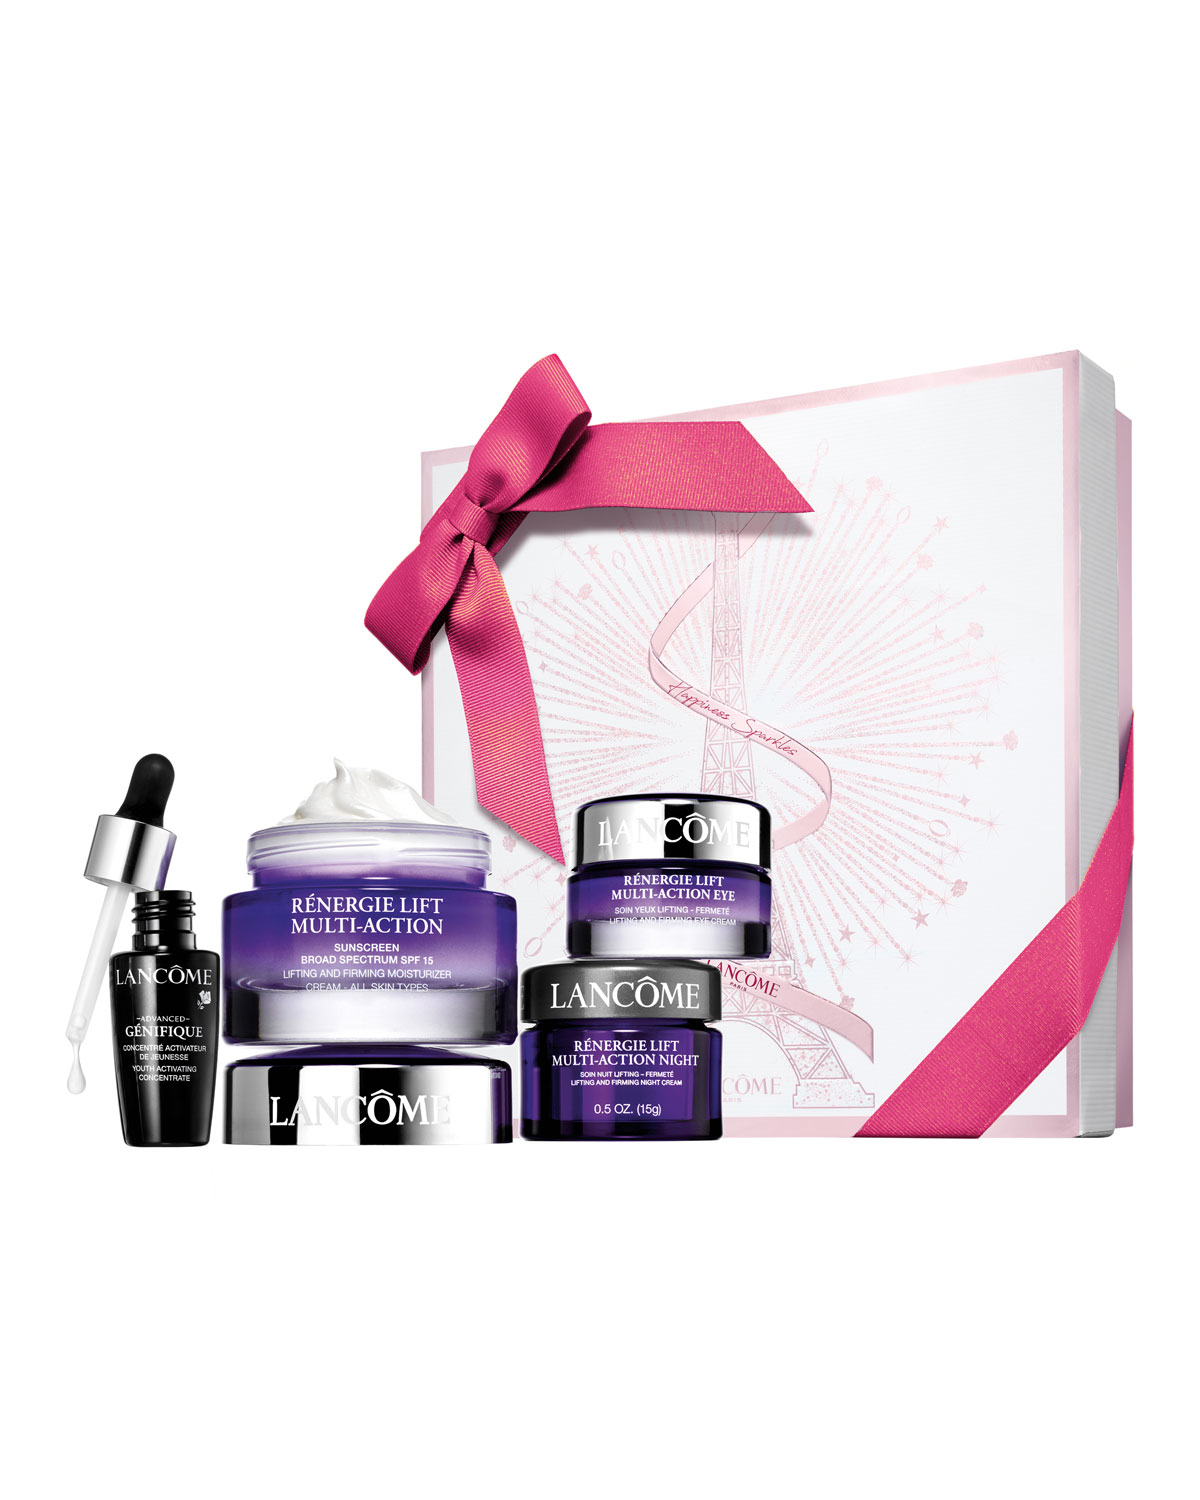 Lancôme VISIBLY LIFTING, FIRMING & TIGHTENING REGIMEN R & #233NERGIE LIFT MULTI-ACTION COLLECTION ($218.50 V